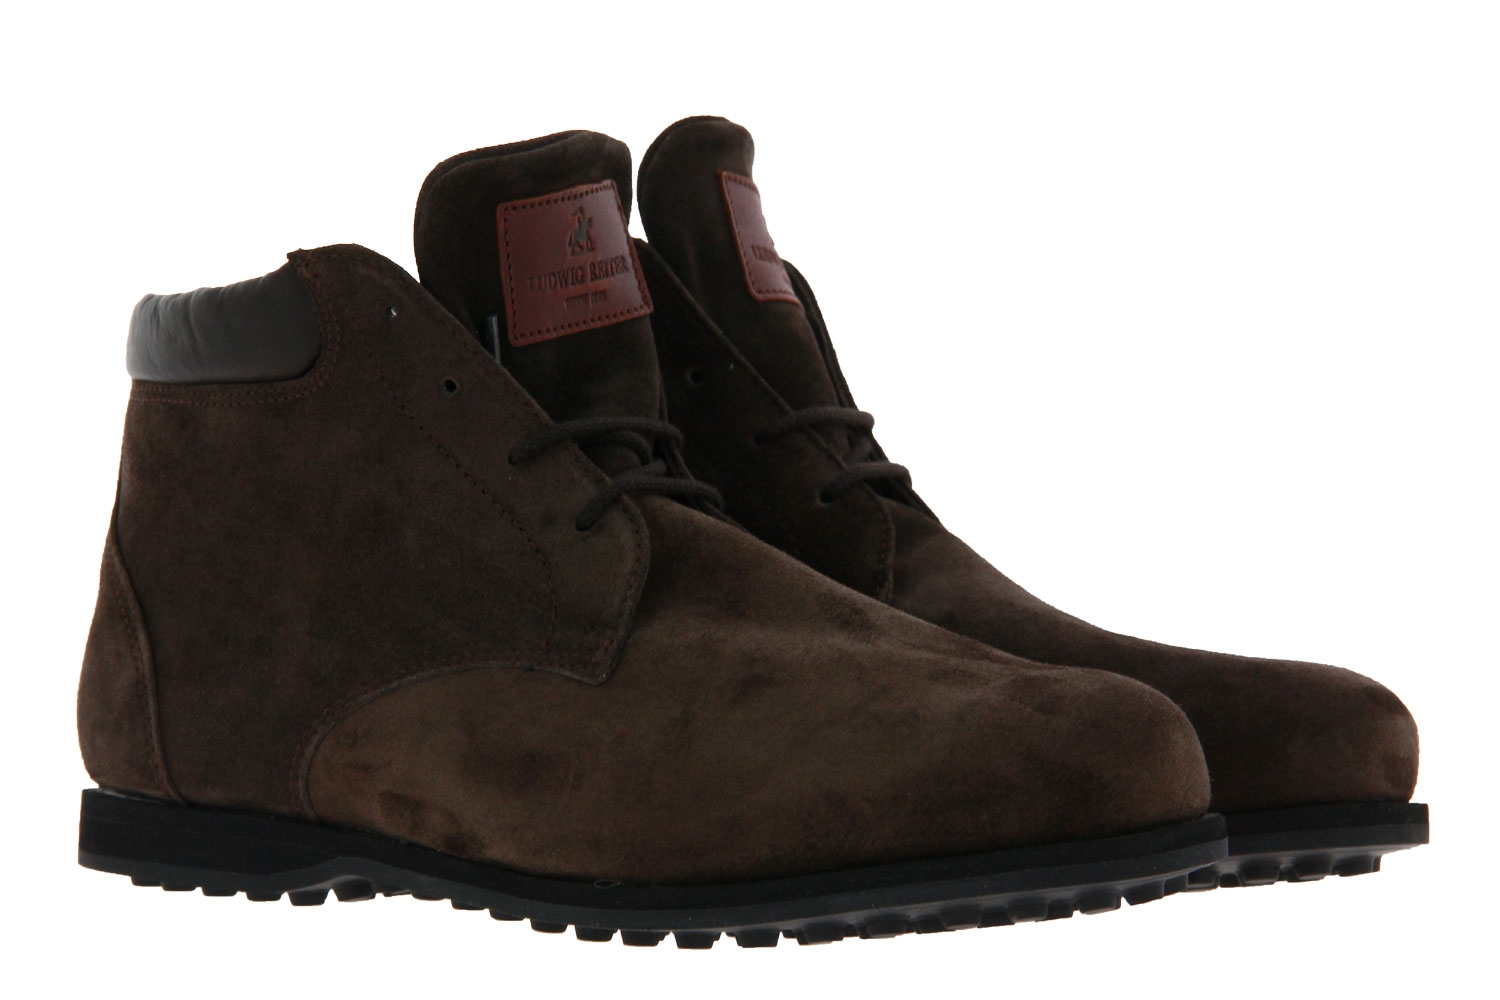 Ludwig Reiter lace-up boots lined GRINZINGER VELOUR DUNKELBRAUN